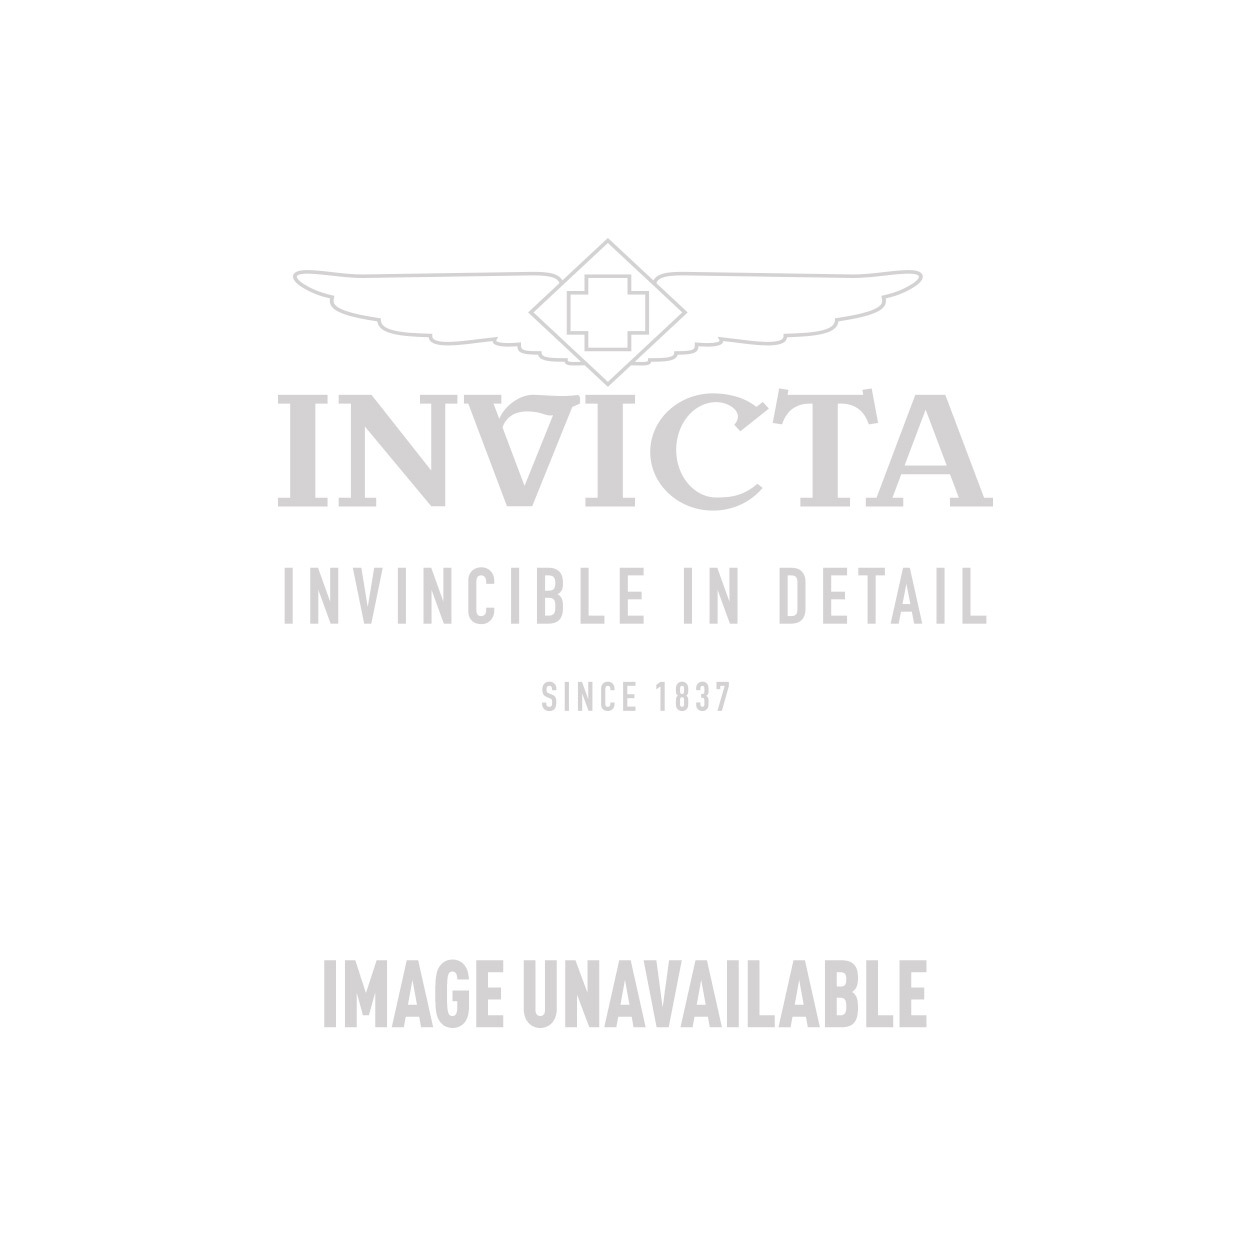 Invicta Reserve Swiss Made Quartz Watch - Gold, Gunmetal case with Gold, Gunmetal tone Stainless Steel, Polyurethane band - Model 6312